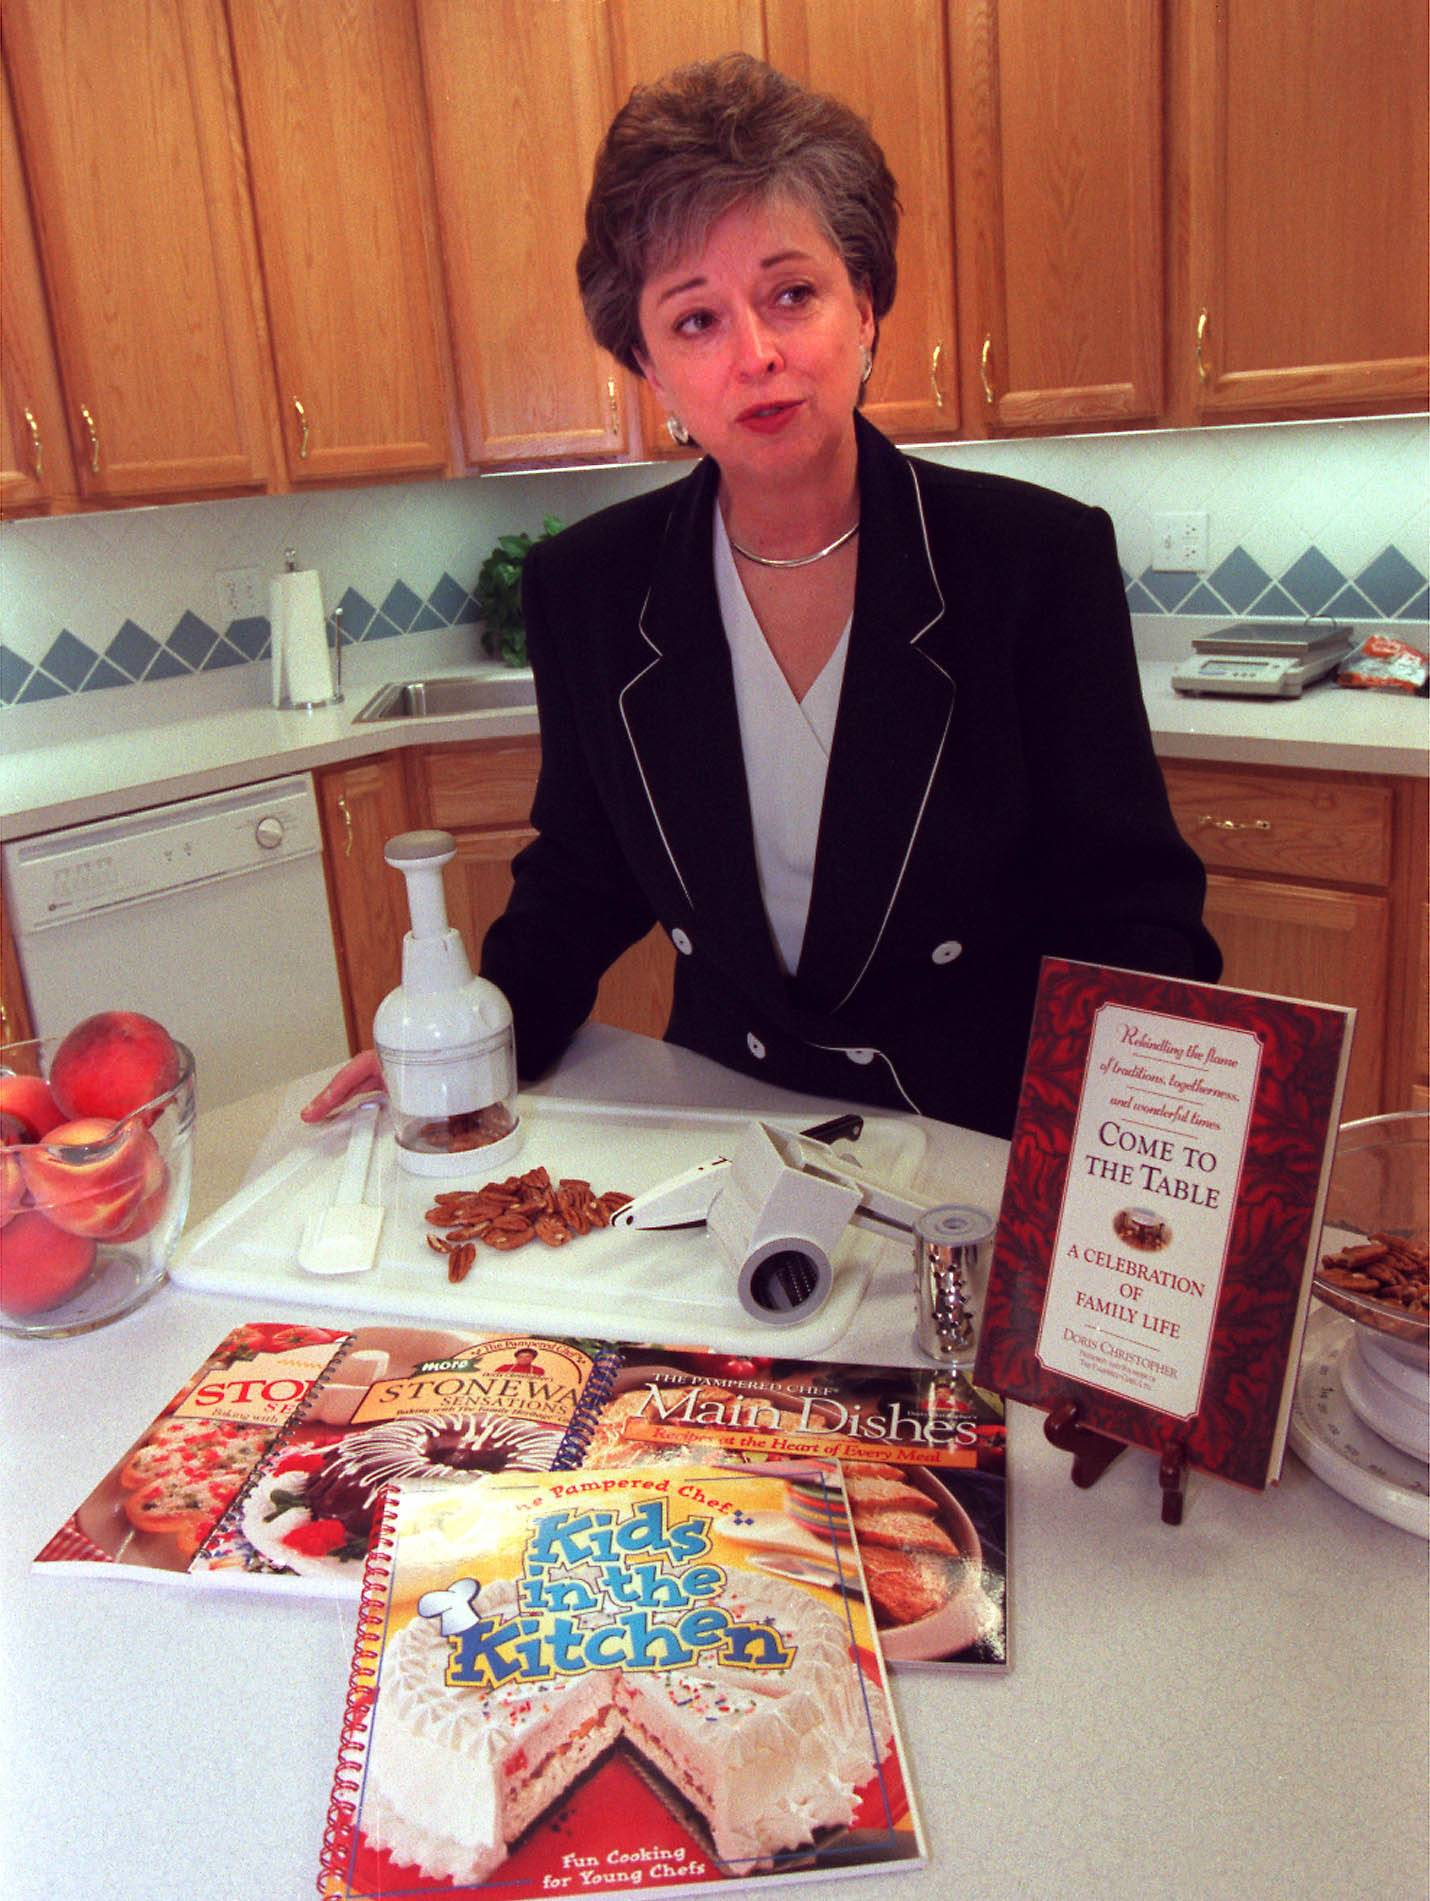 Doris Christopher, CEO and founder of the Pampered Chef